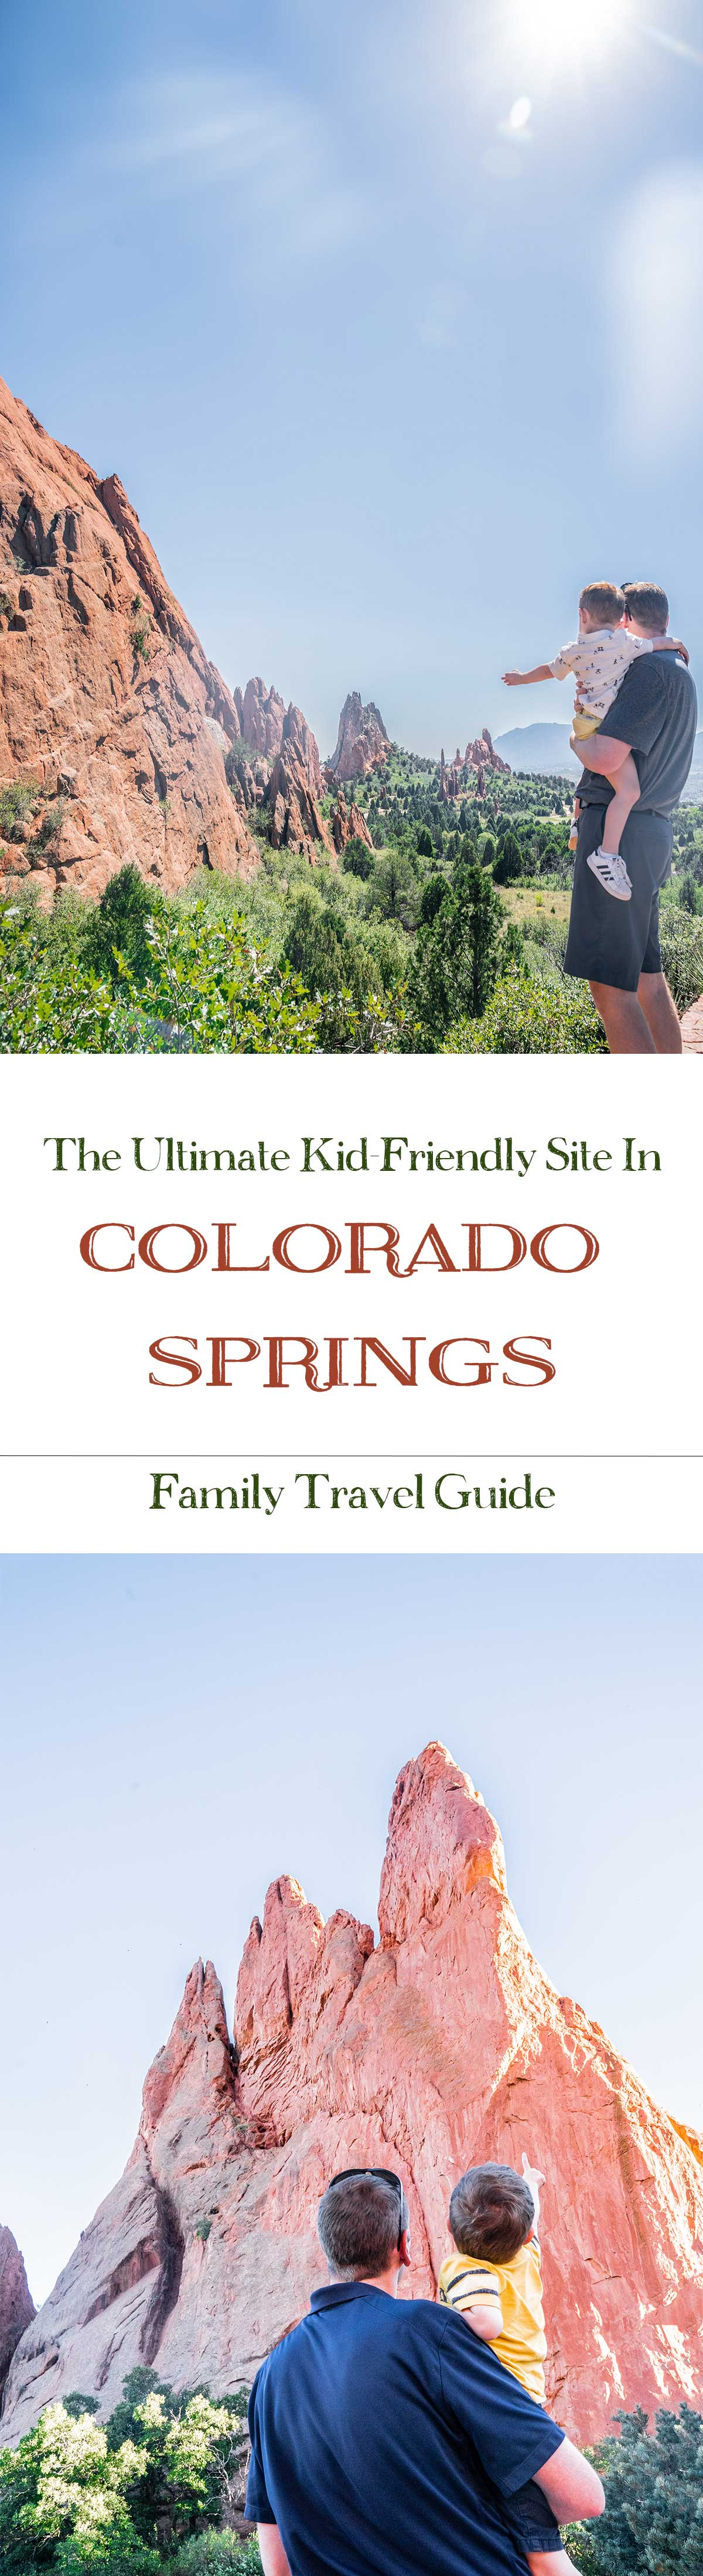 The-Ultimate-Kid-Friendly-Site-In-Colorado-Springs-Family-Travel-Guide